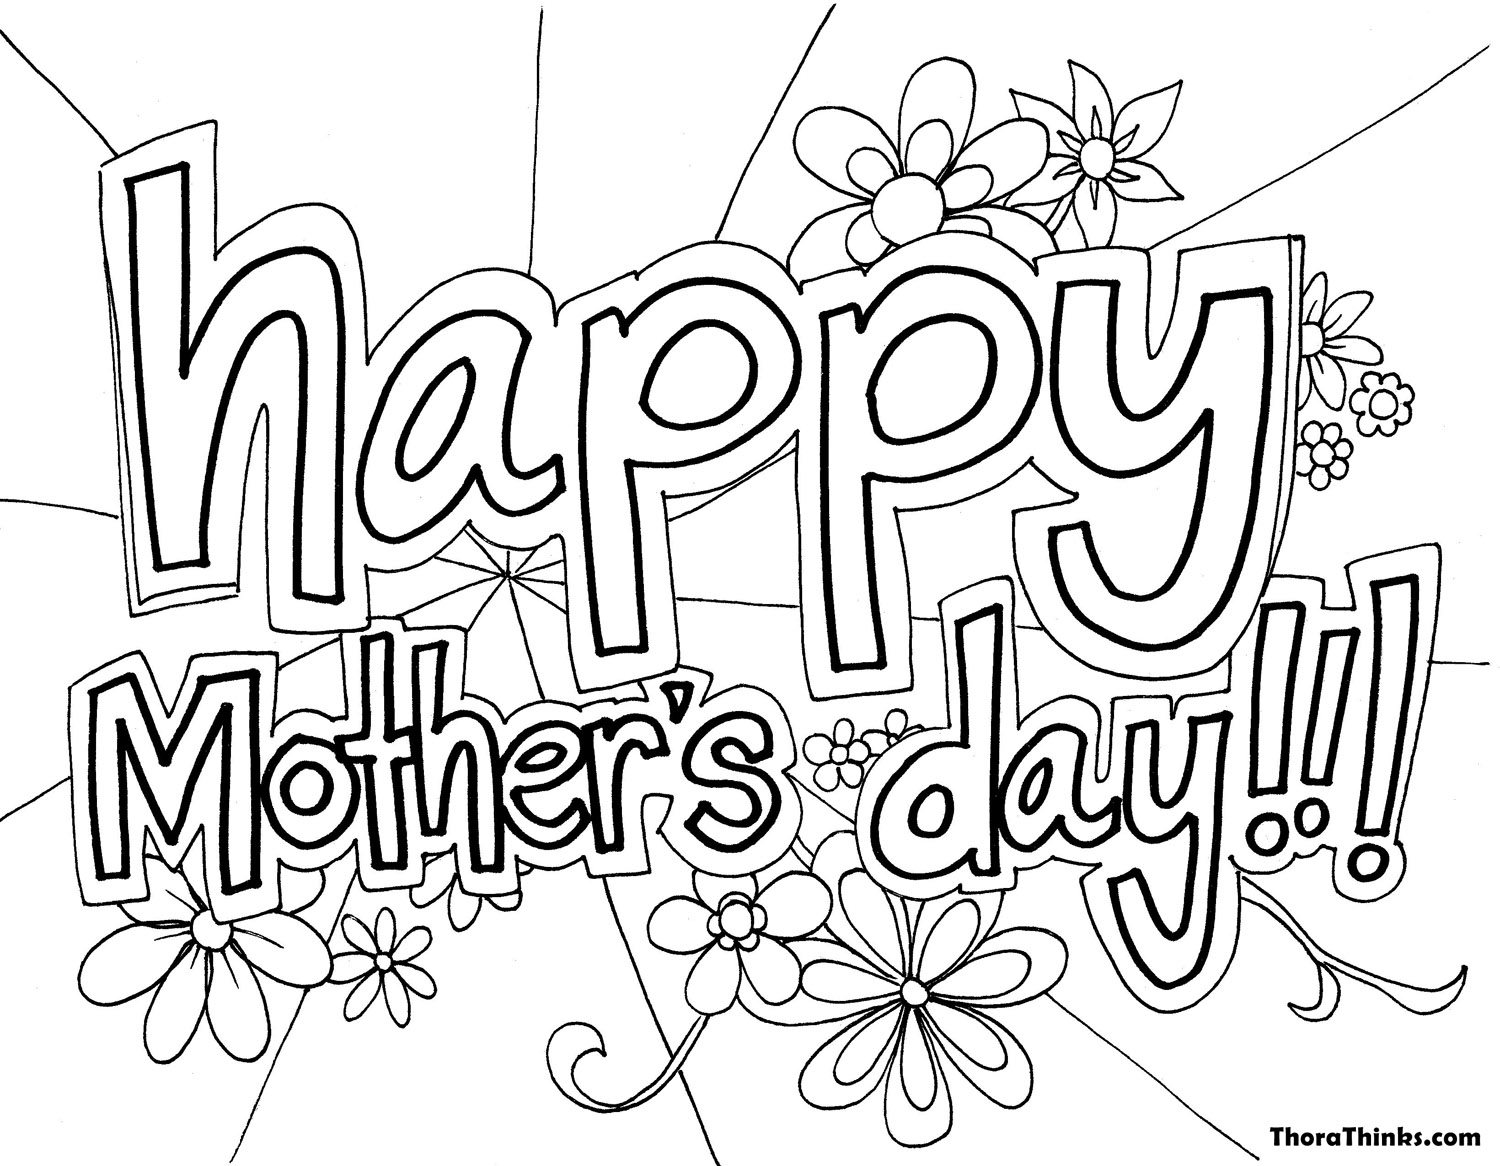 Mothers day coloring pages 33 pictures cards and cakes for Coloring pages mother